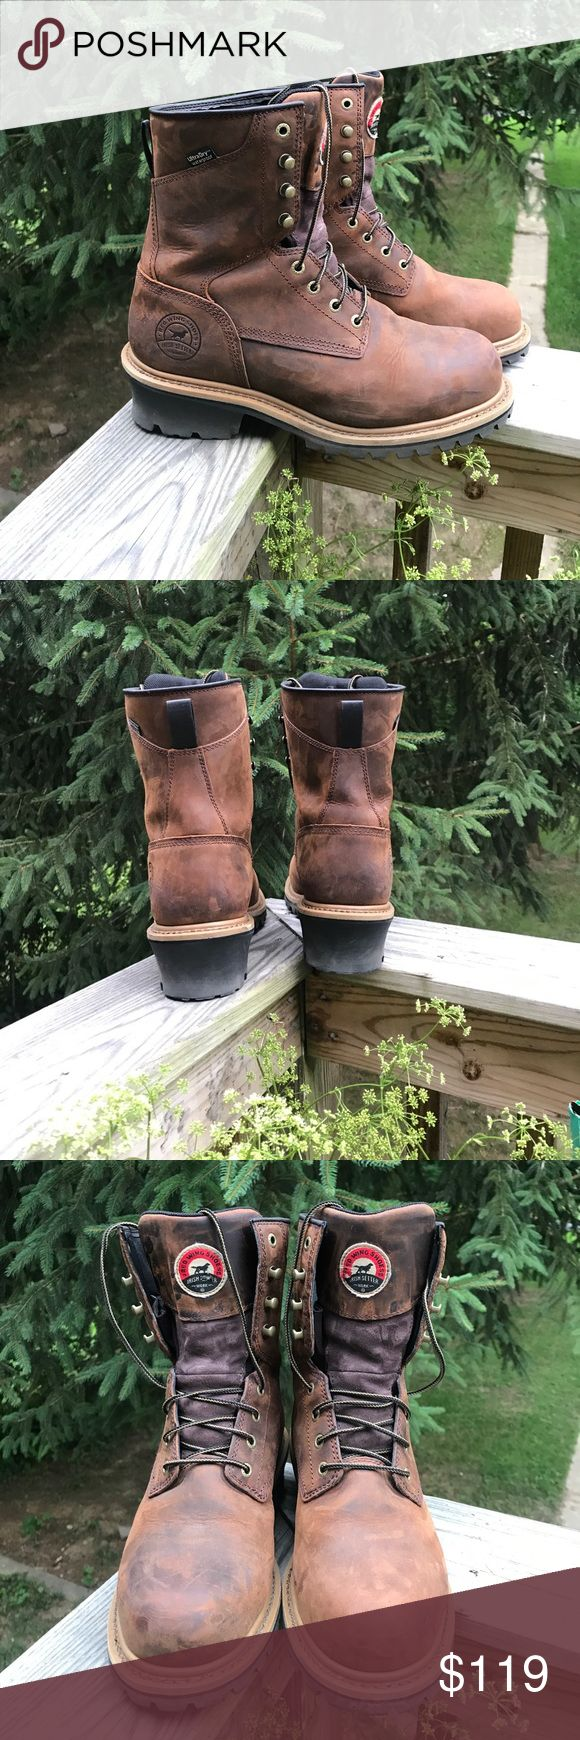 🇺🇸Red Wing Irish Setter Boots size 9.5EE Red Wing Irish setter steel toe boots **size 9.5 EE ** please see photos. Smoke free pet free home. Only owned for about a month and worn less than a handful of times. Red Wing Shoes Shoes Boots